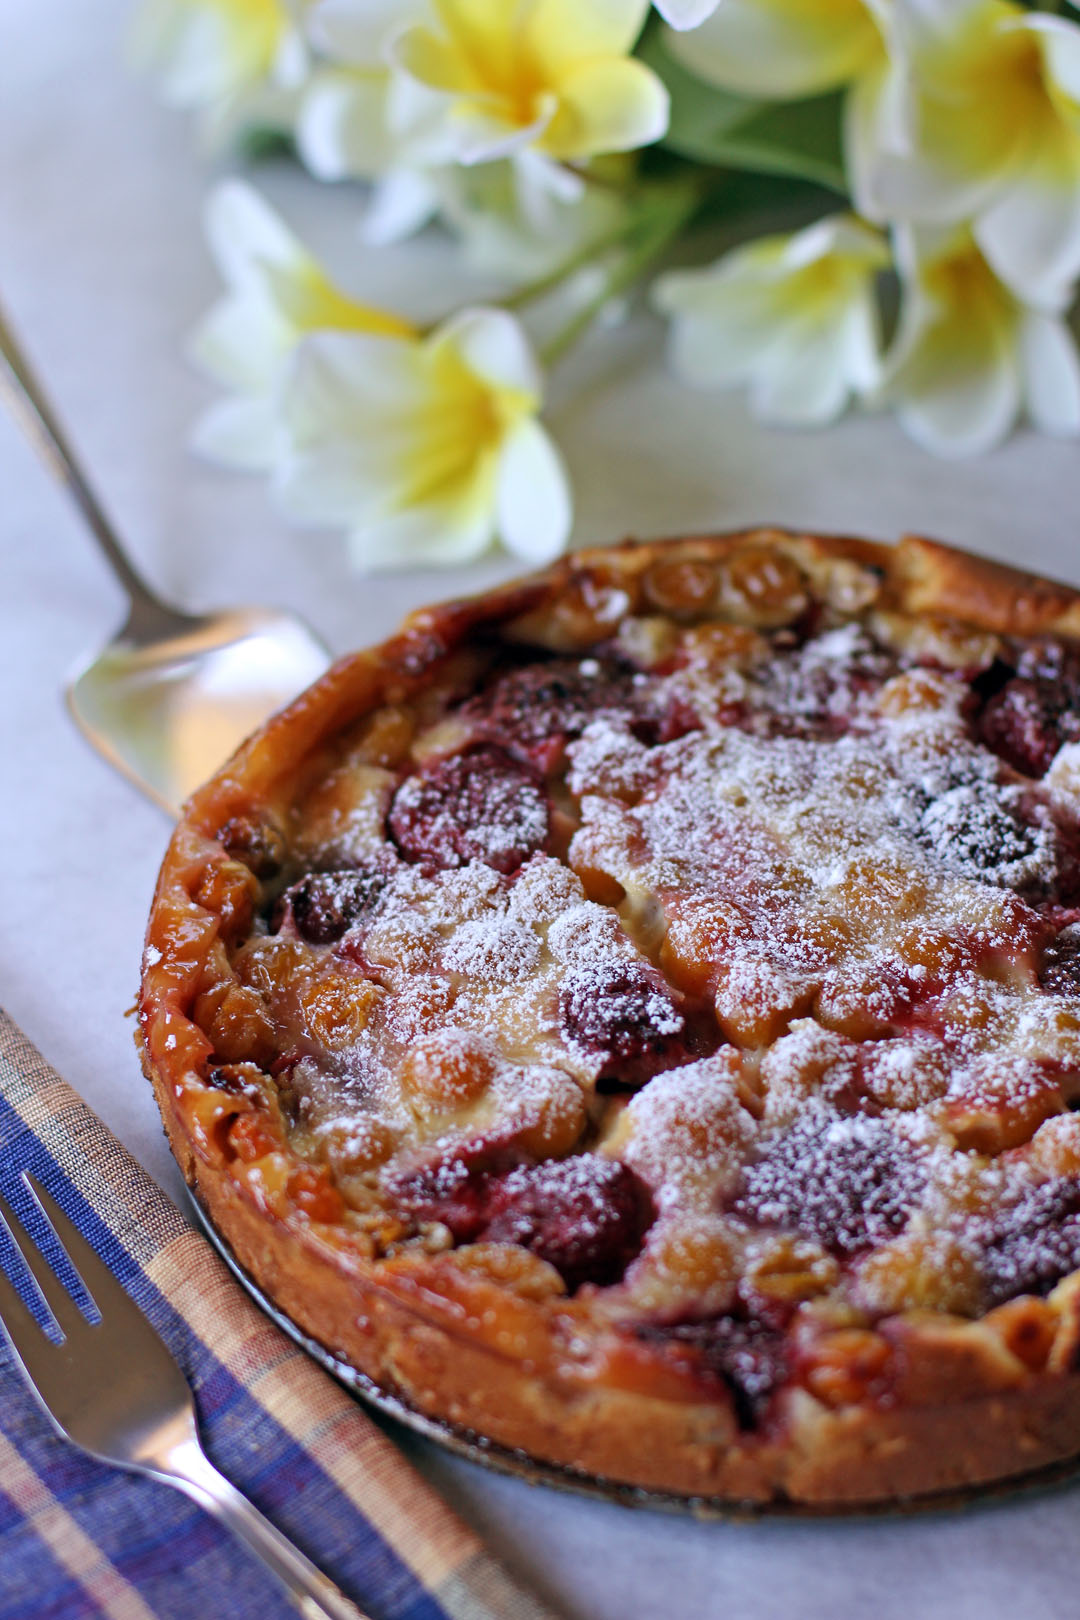 Flaugnarde Of Mixed Berries (Clafoutis) Recipes — Dishmaps